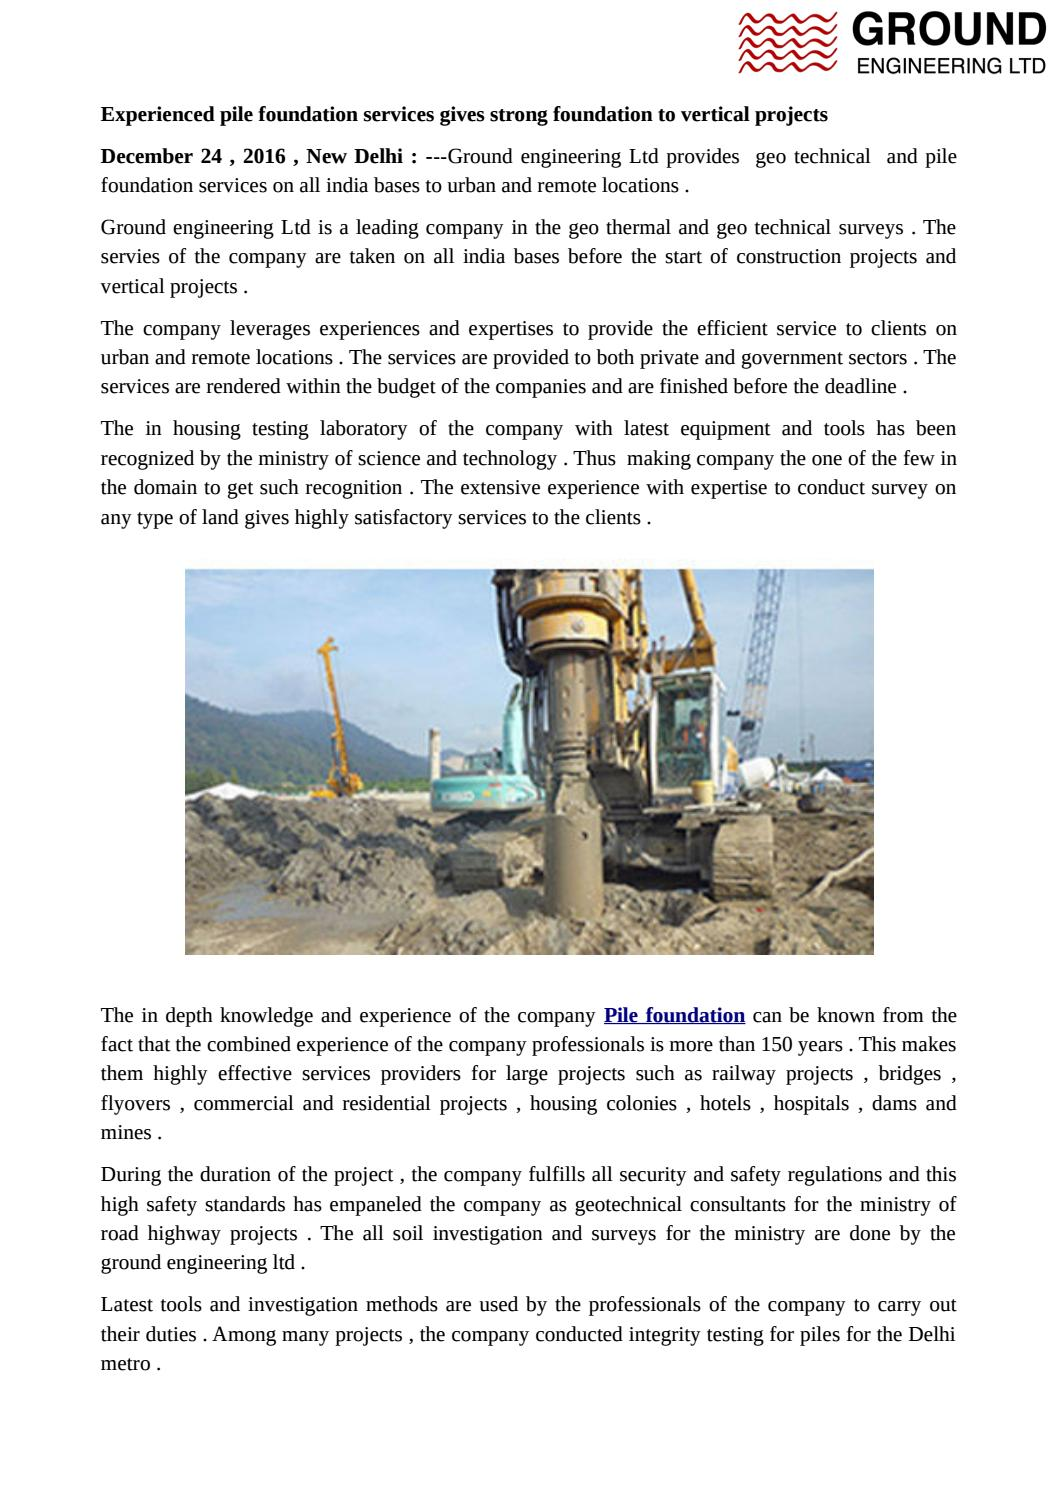 Experienced pile foundation services gives strong foundation to